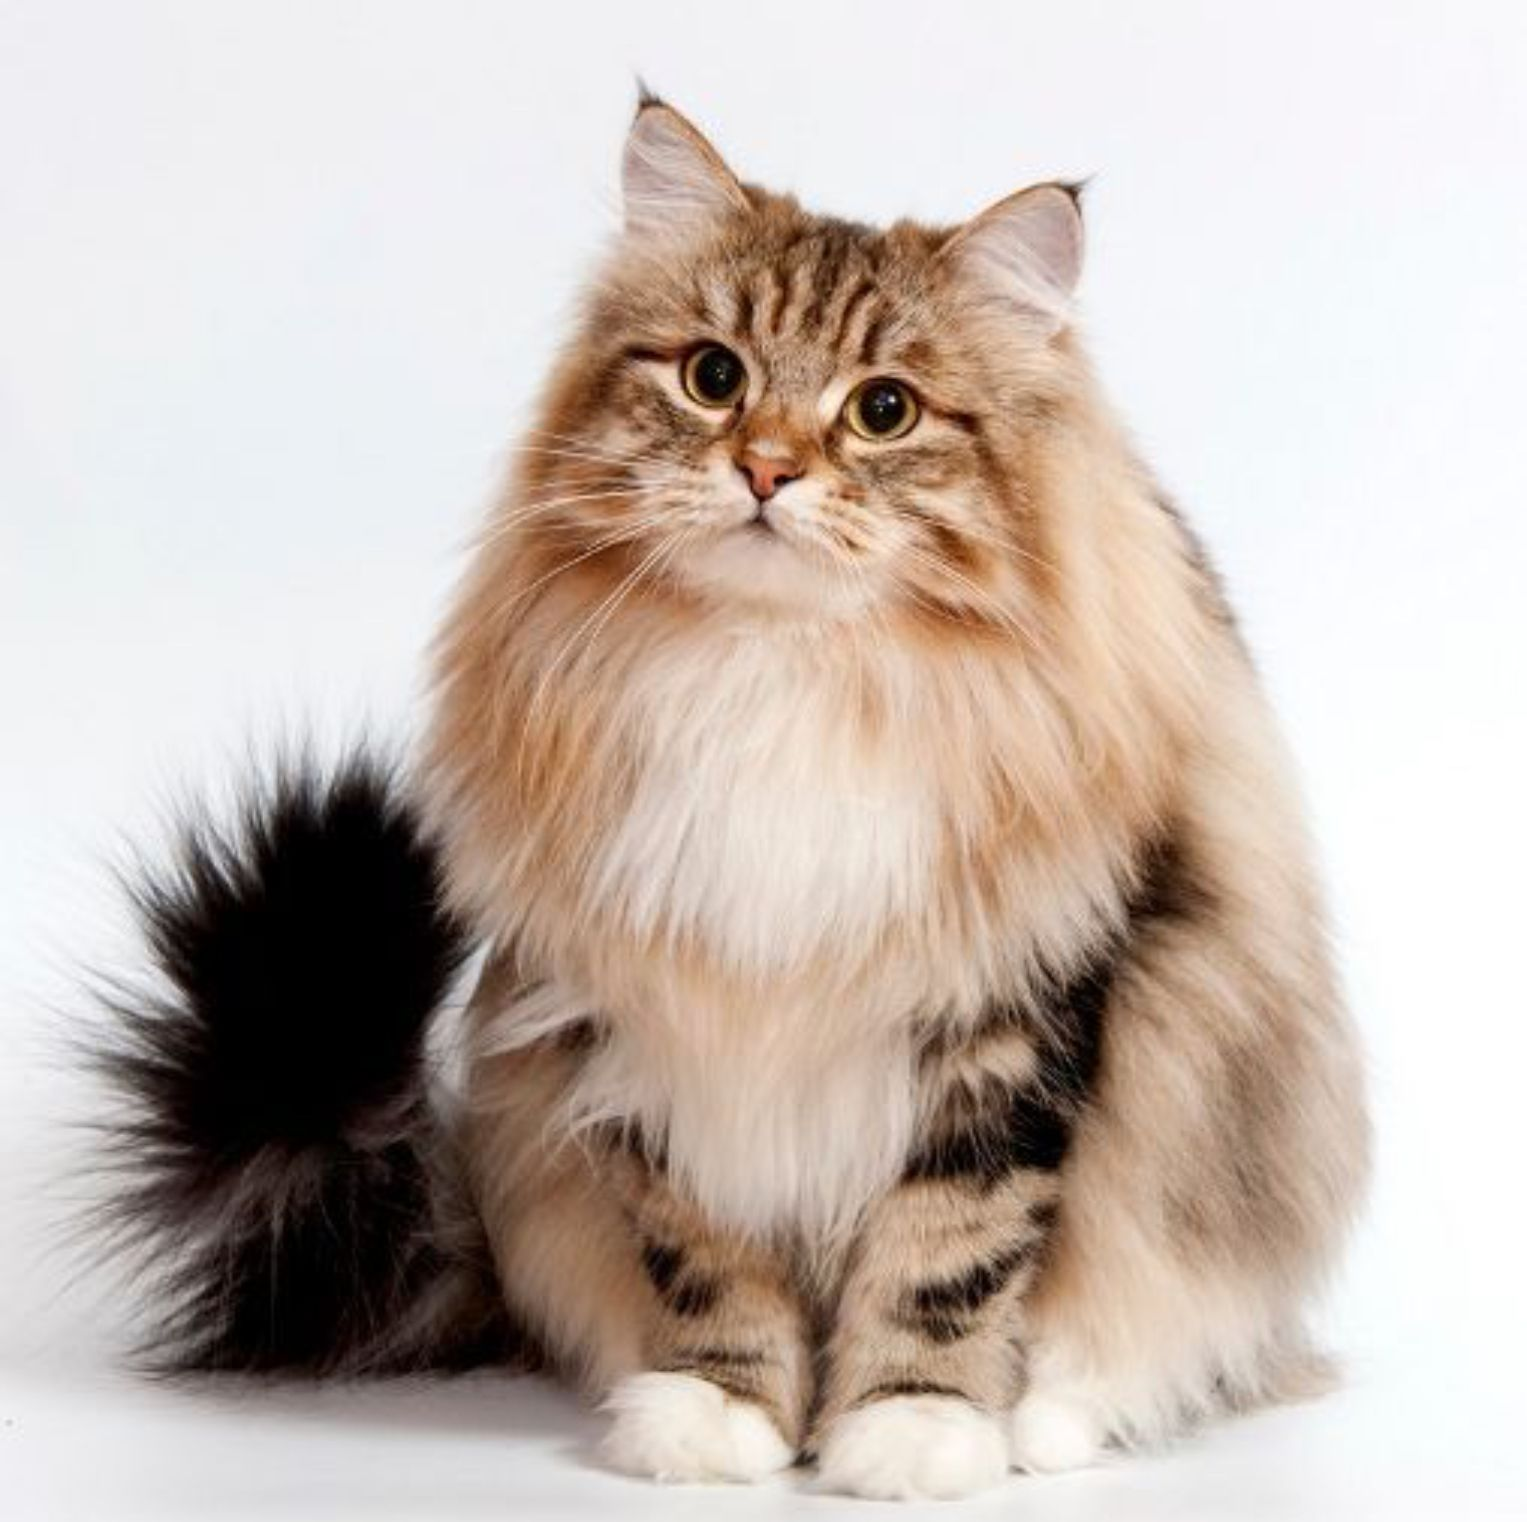 Pin By Eugenia Bukiet On Cats In 2020 Siberian Cat Siberian Forest Cat Cat Breeds